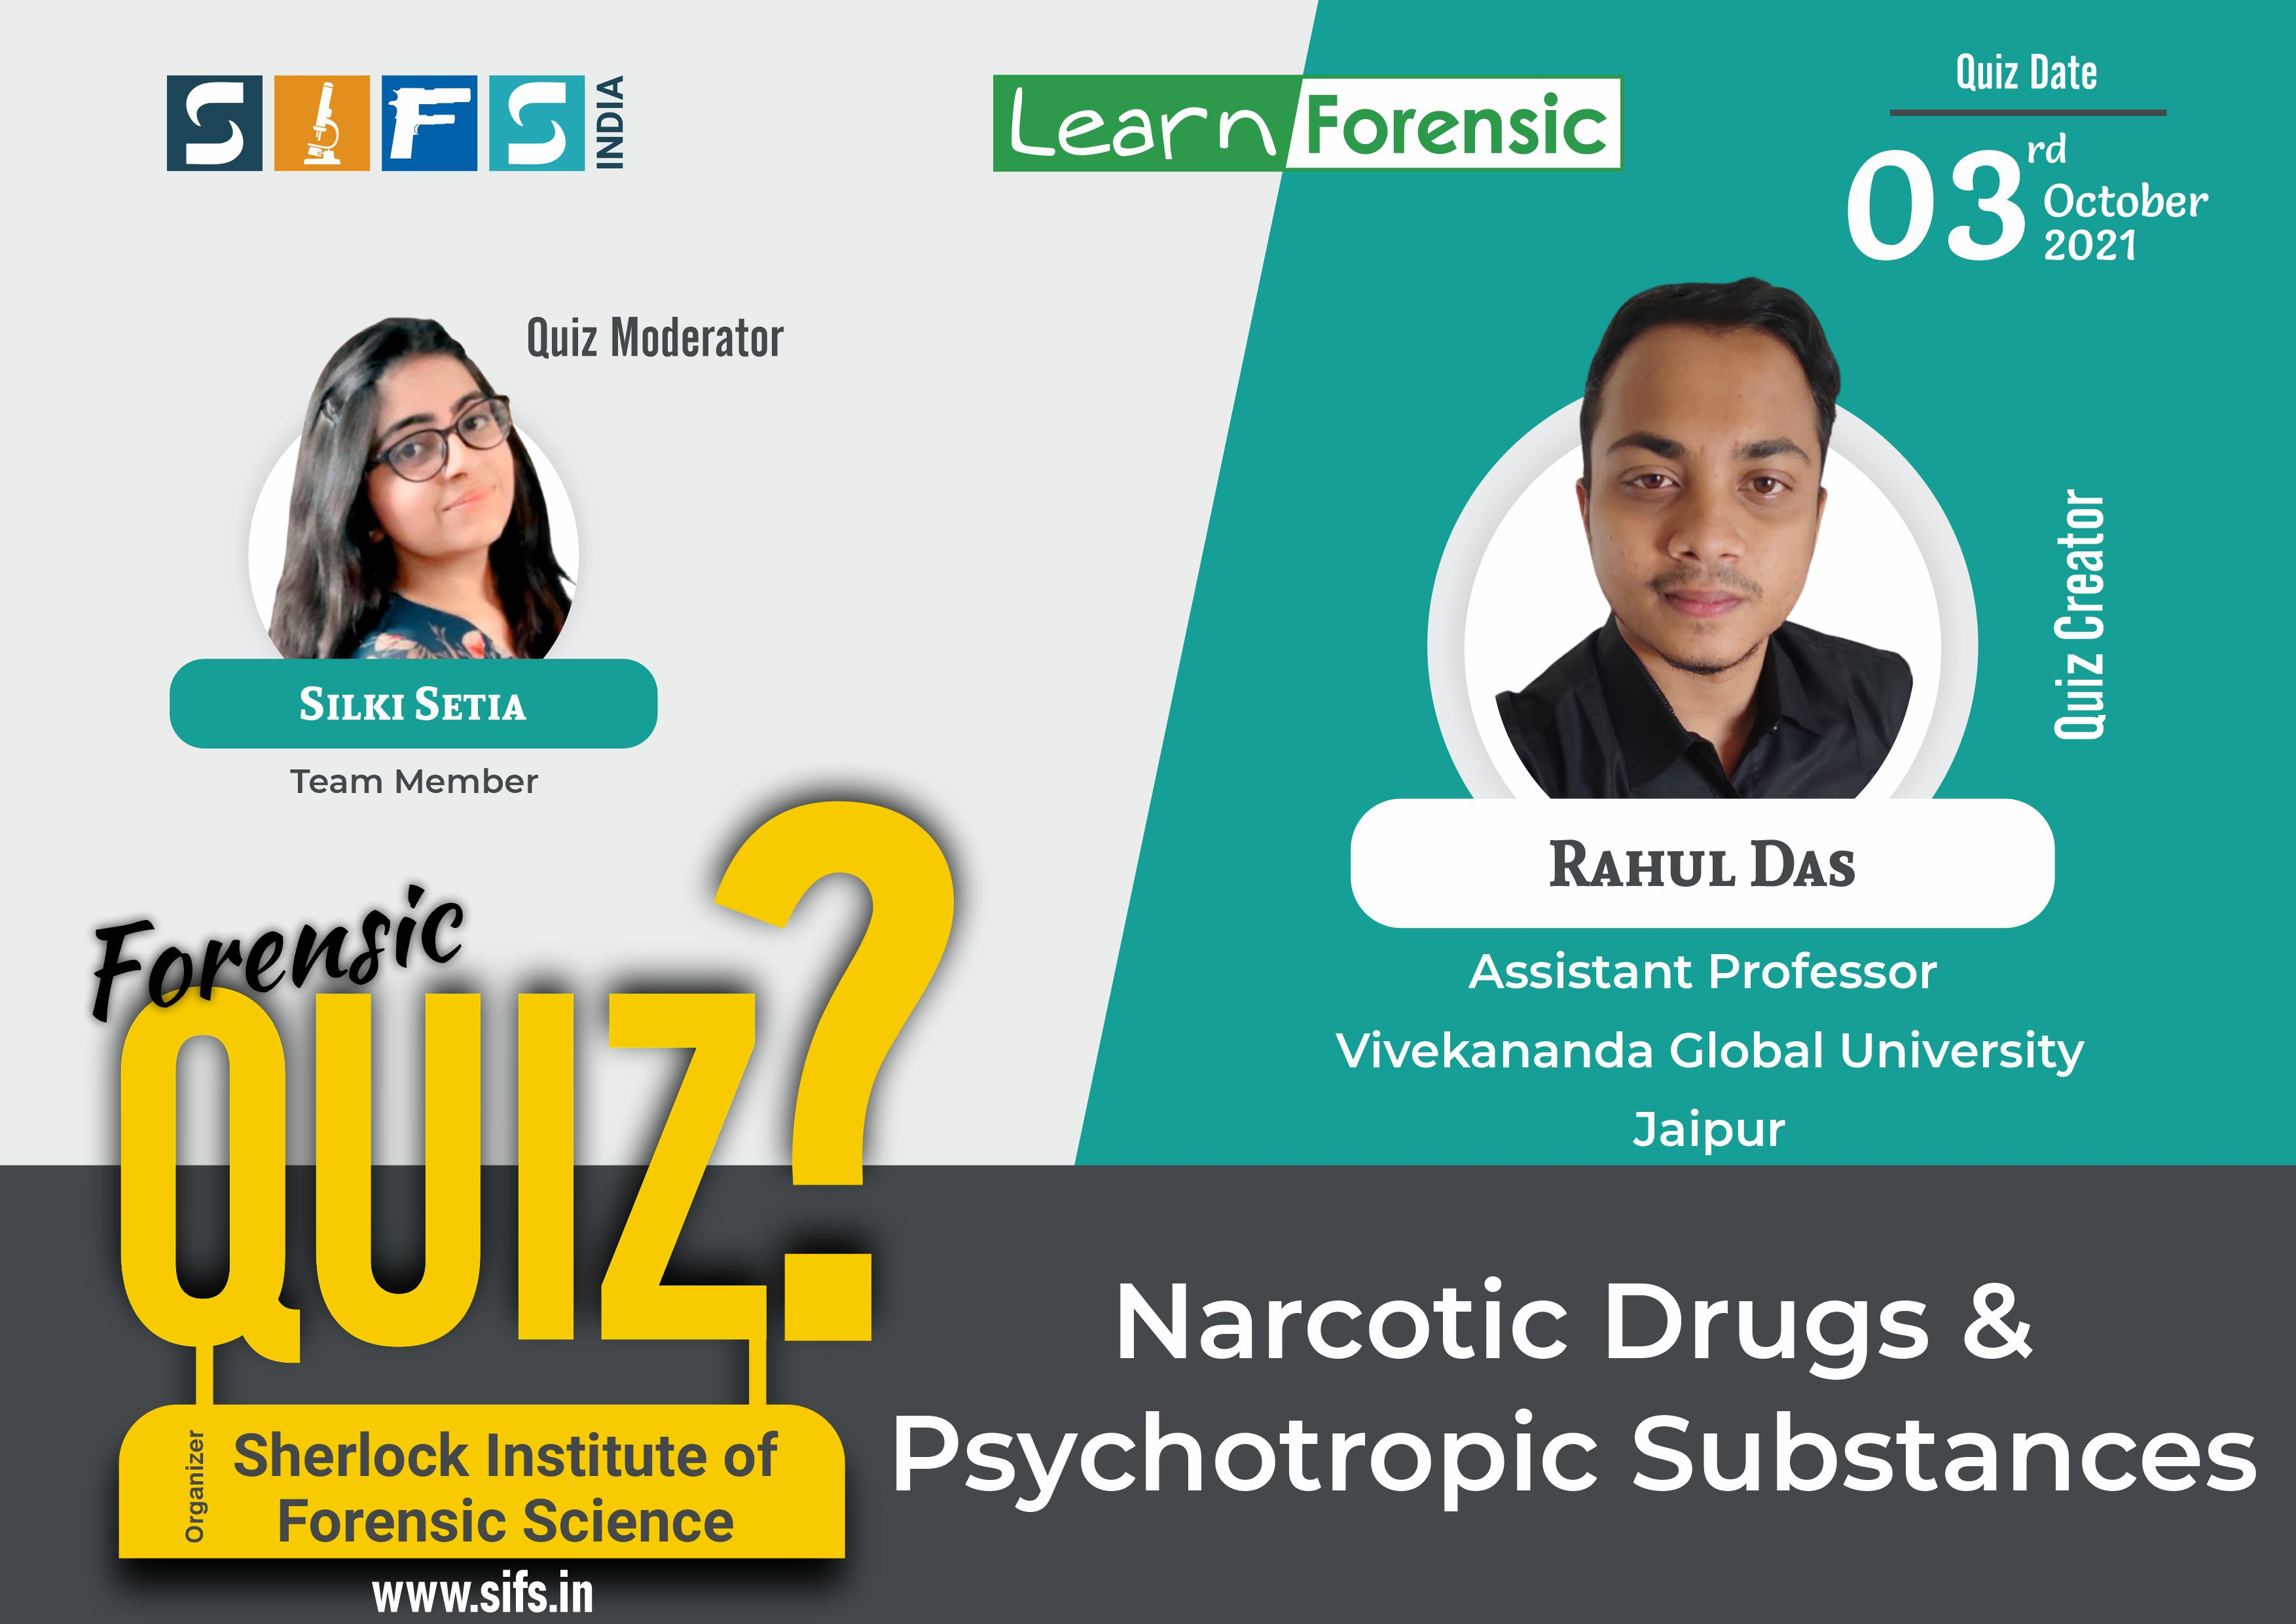 Narcotic Drugs & Psychotropic Substances - Answers